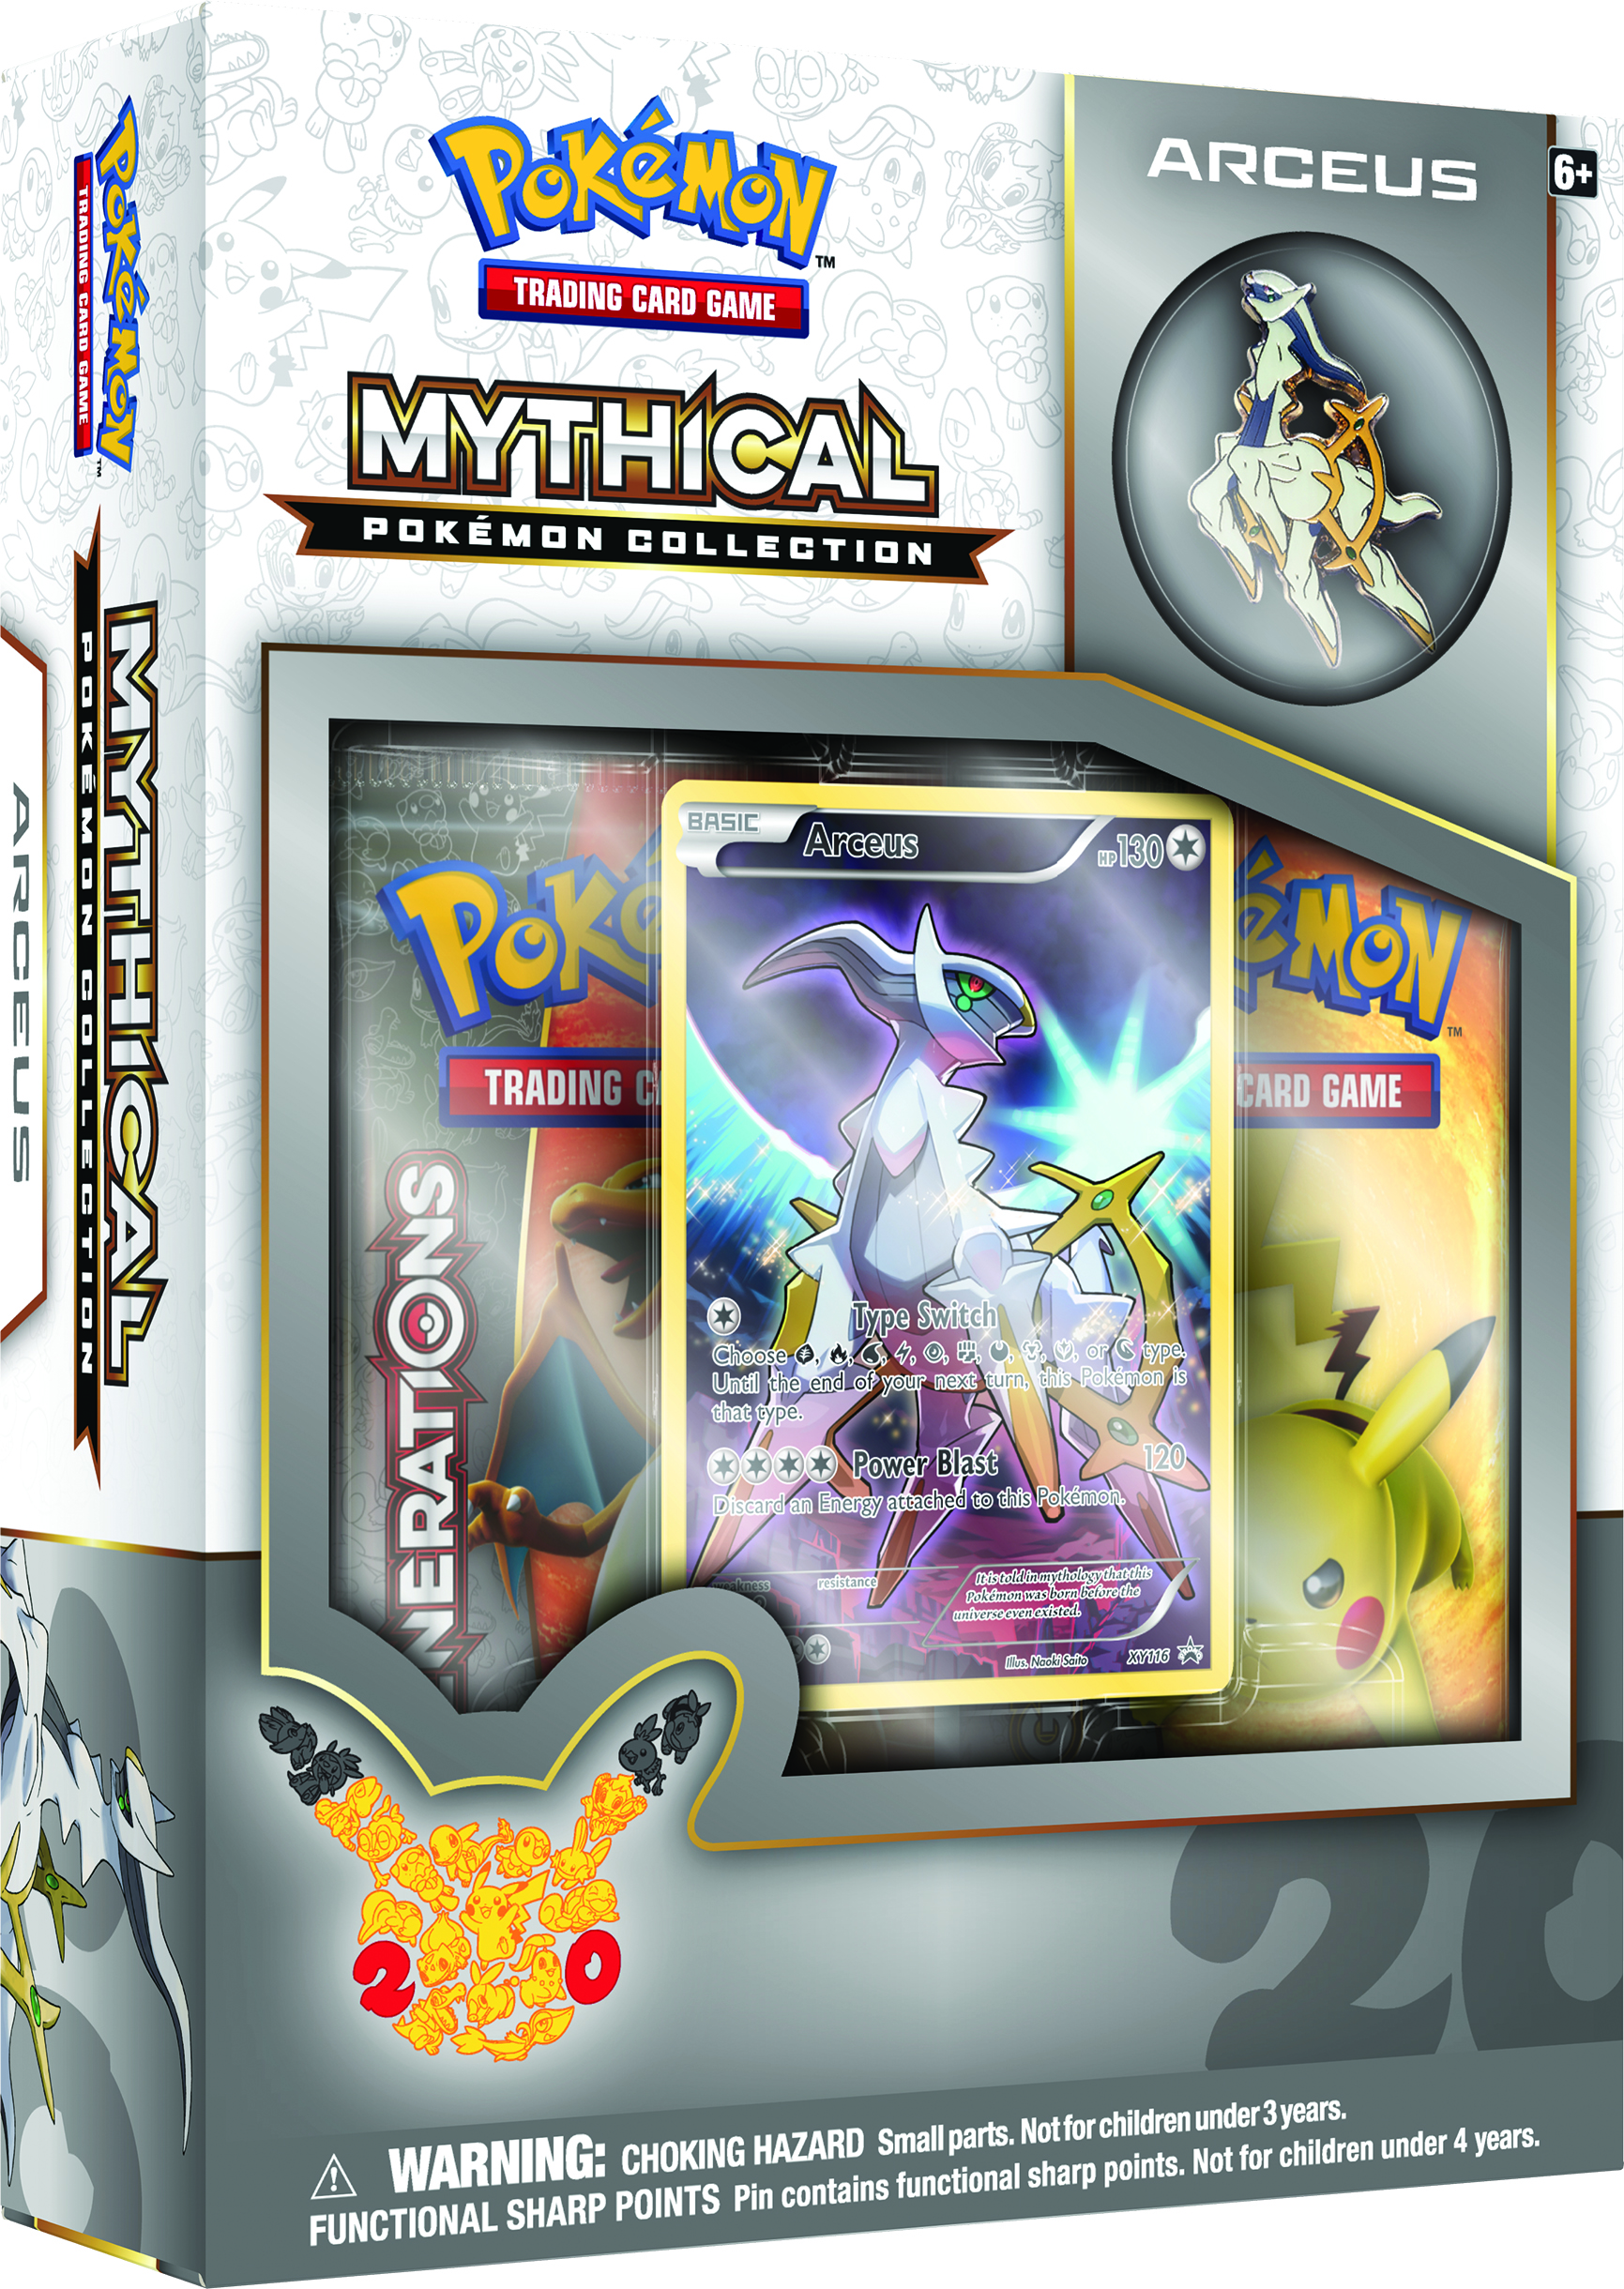 Mythical Pokemn Collection